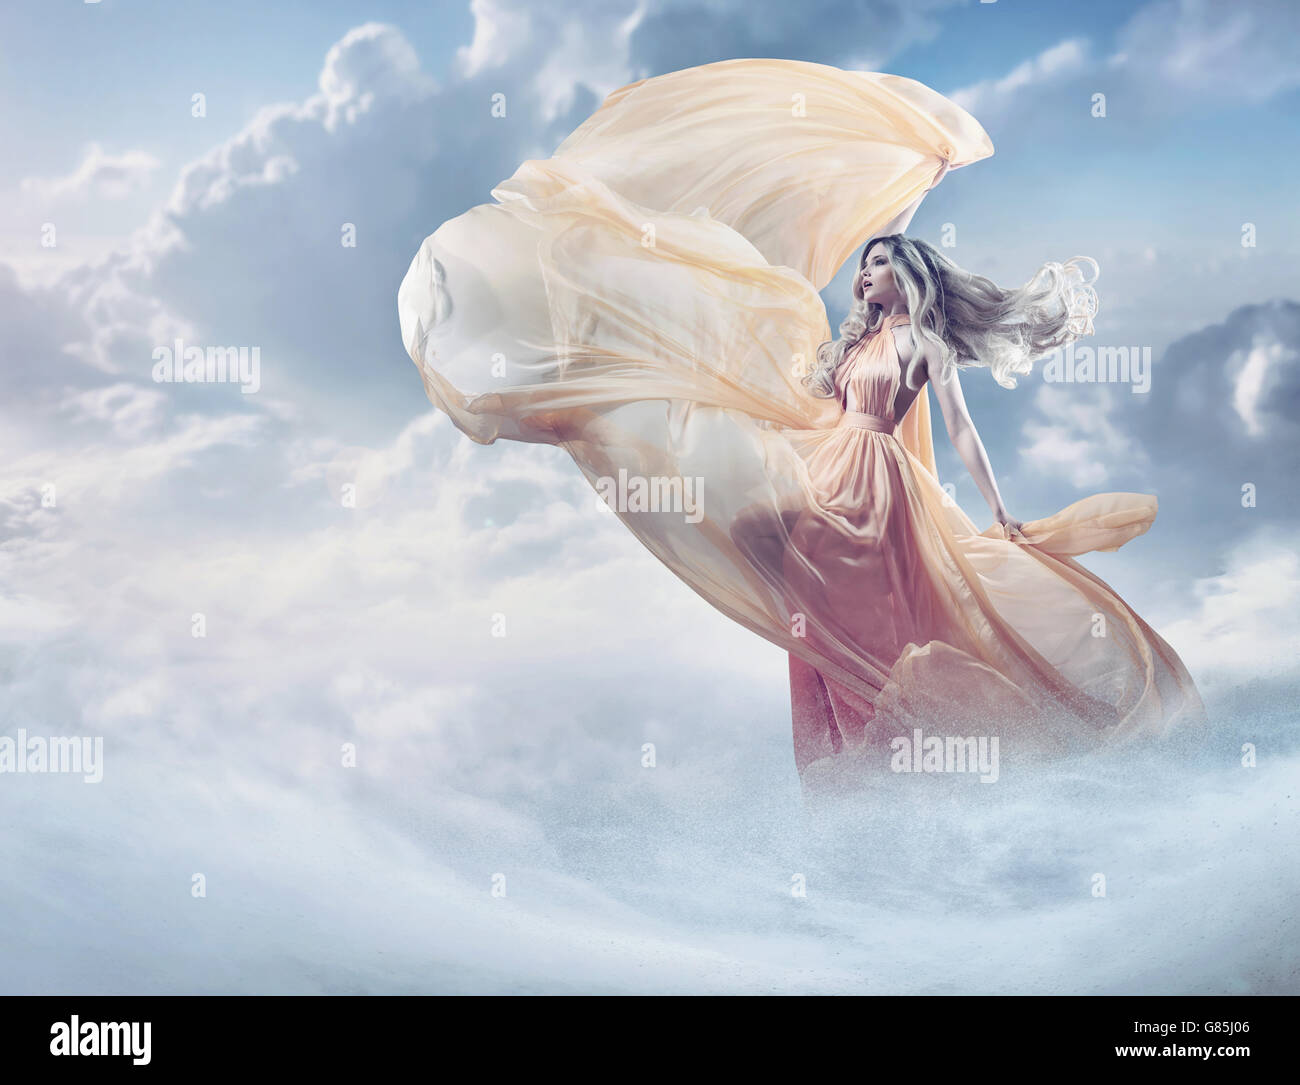 Fairy image of a beautiful young woman in the clouds - Stock Image